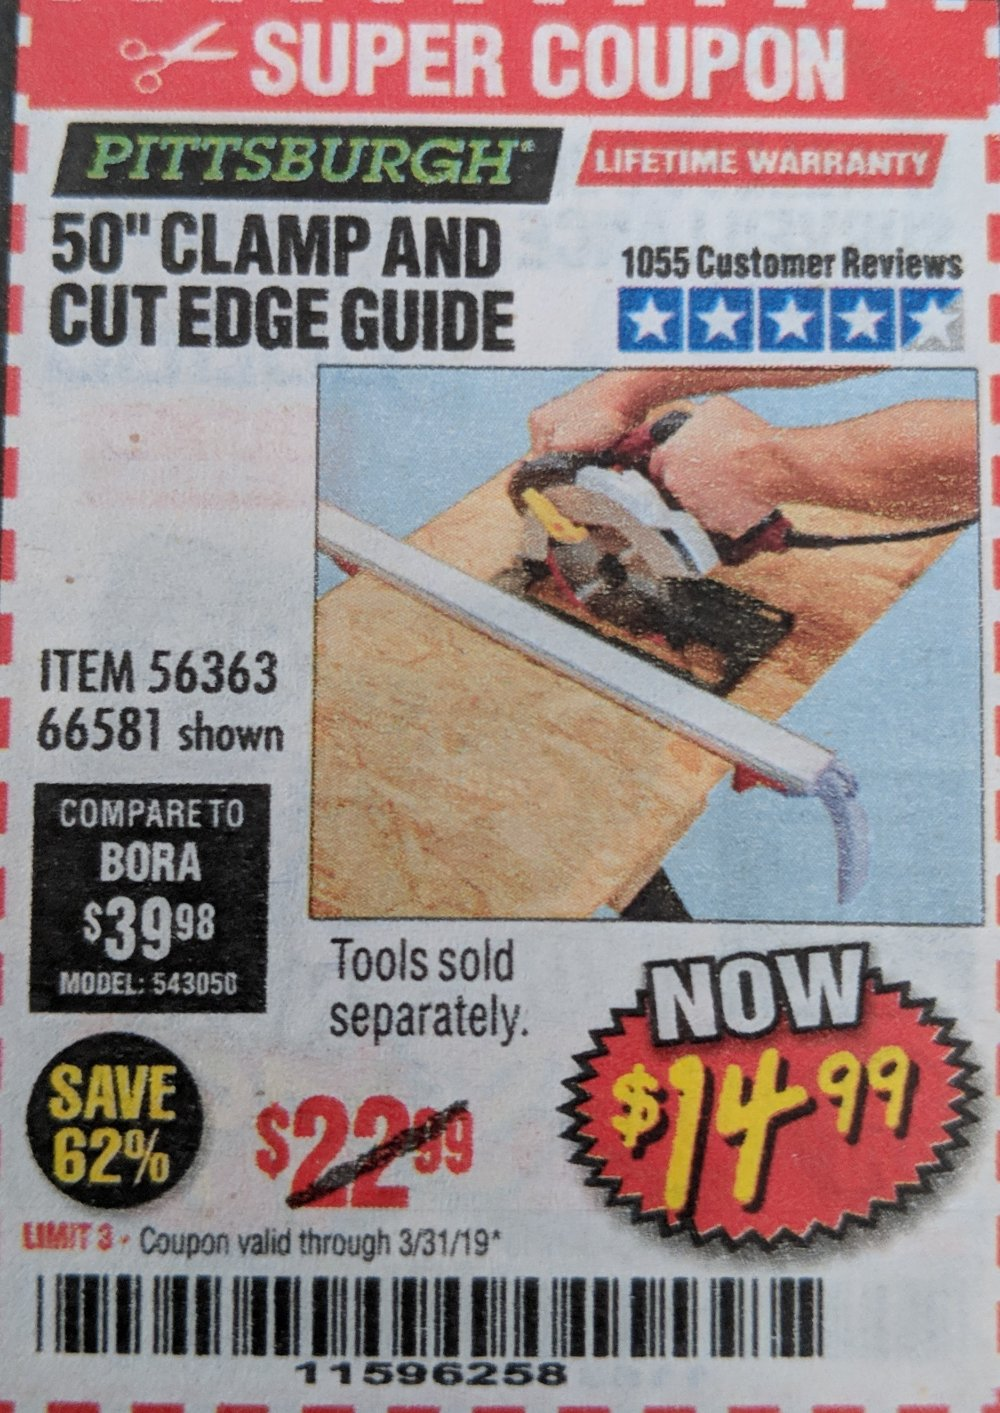 Harbor Freight Coupon, HF Coupons - 50